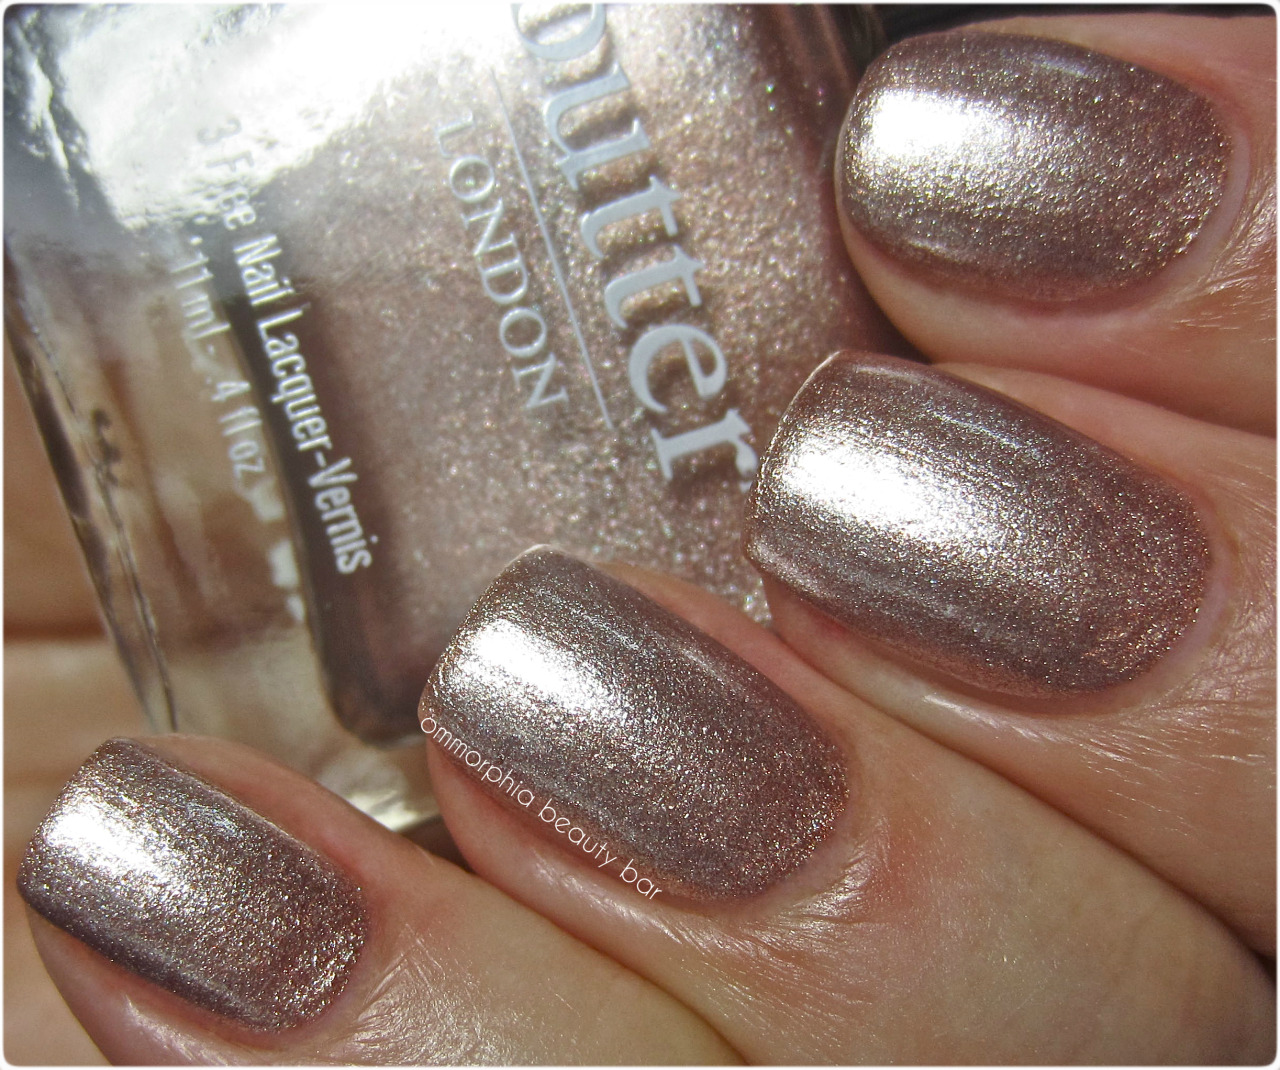 Three metallics from the Butter London Summer 2012 Collection: Champers, Bobby Dazzler, and Marbs